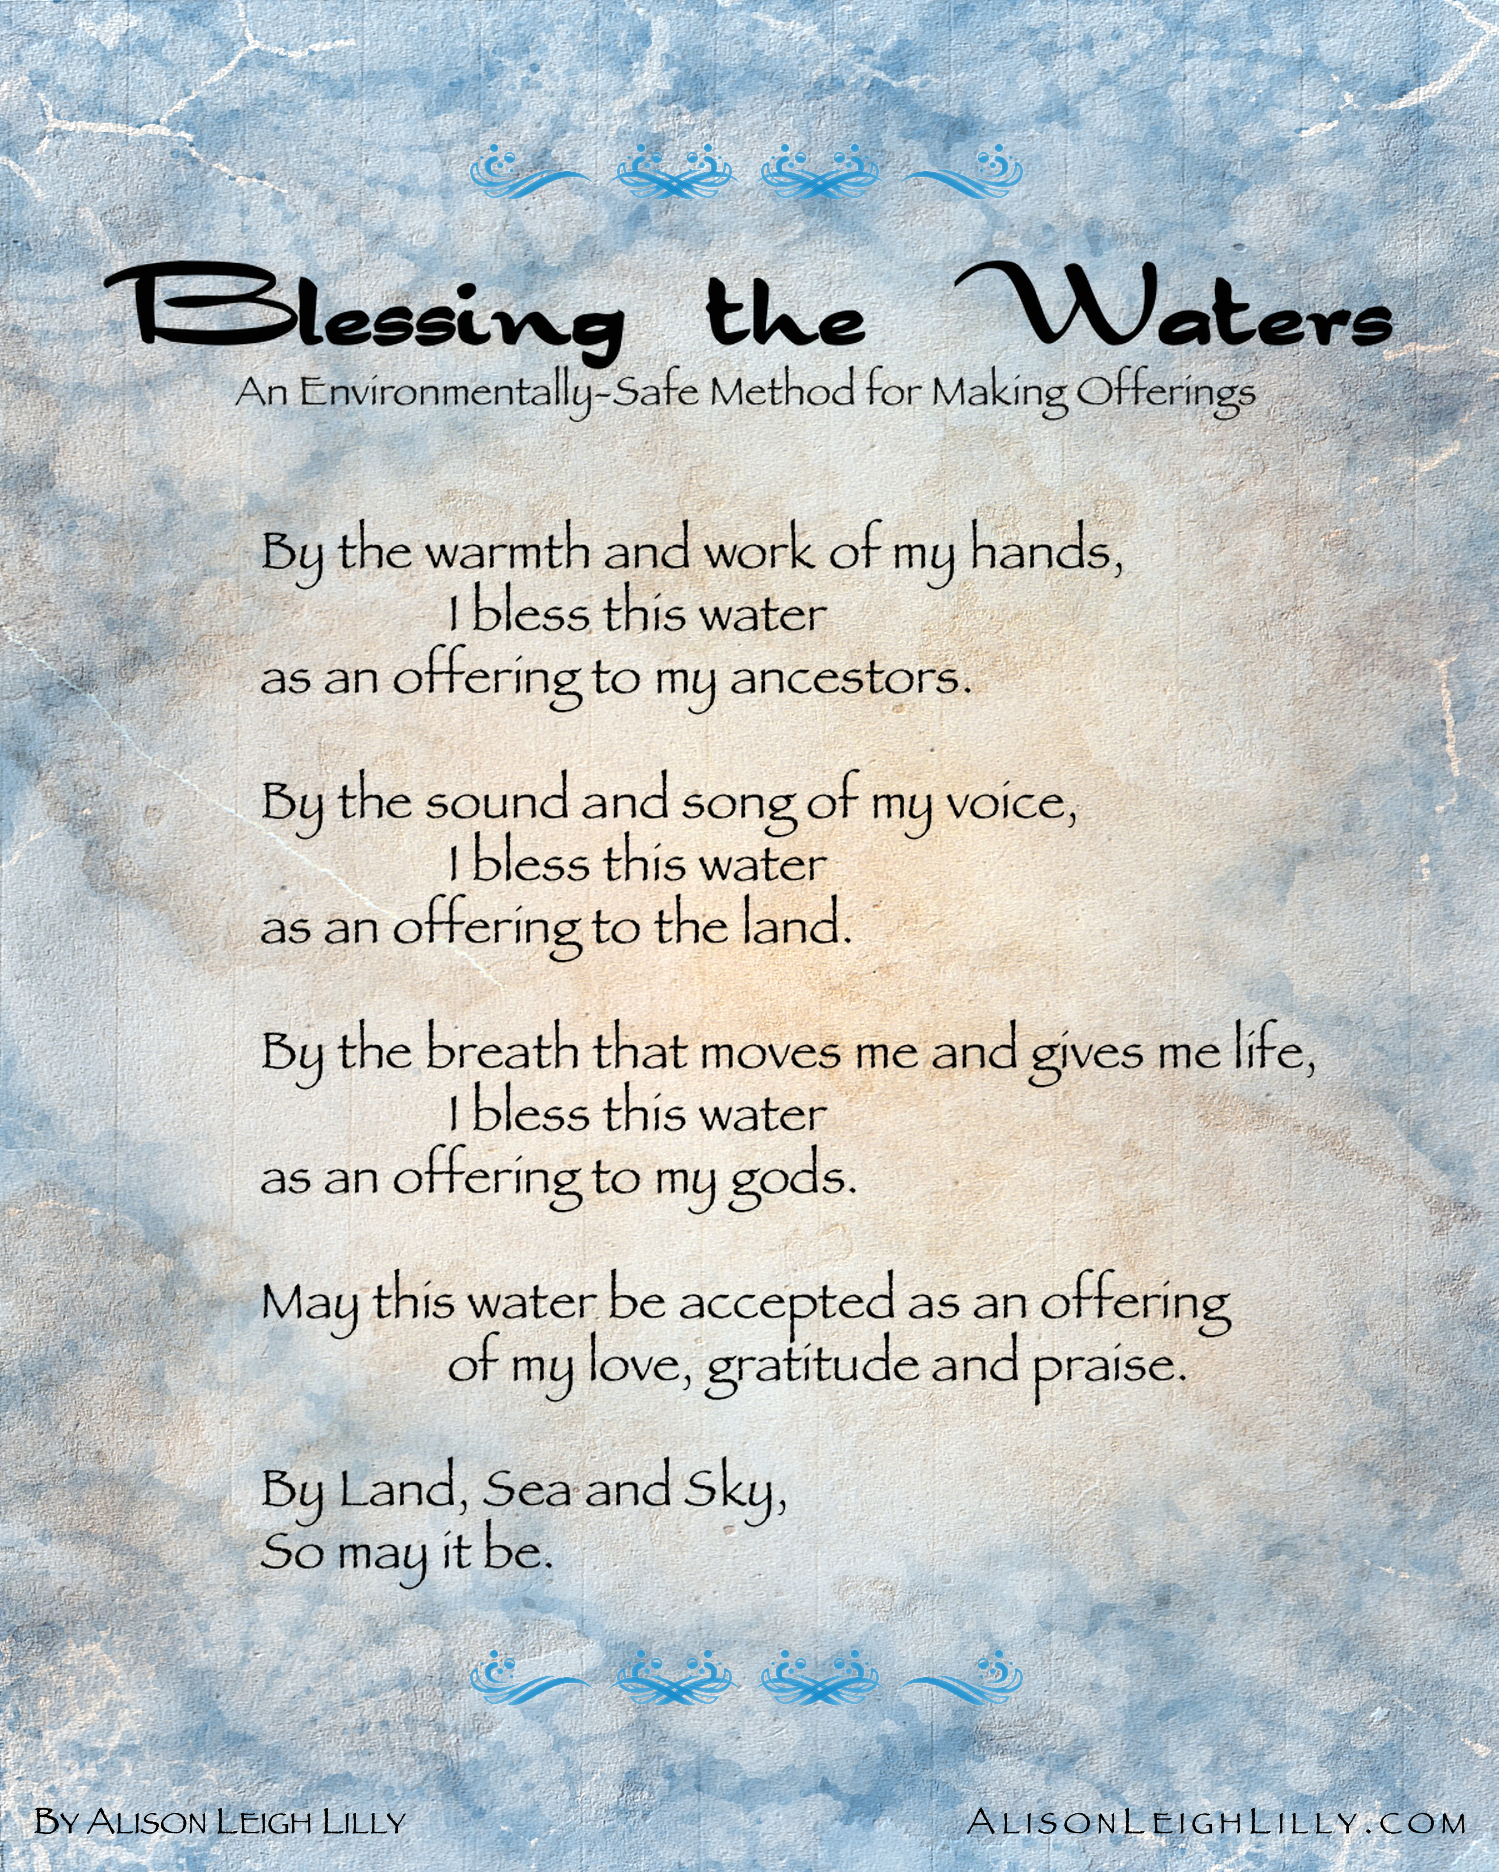 Blessing the Waters, An Environmentally-Safe Method for Making Offerings, by Alison Leigh Lilly